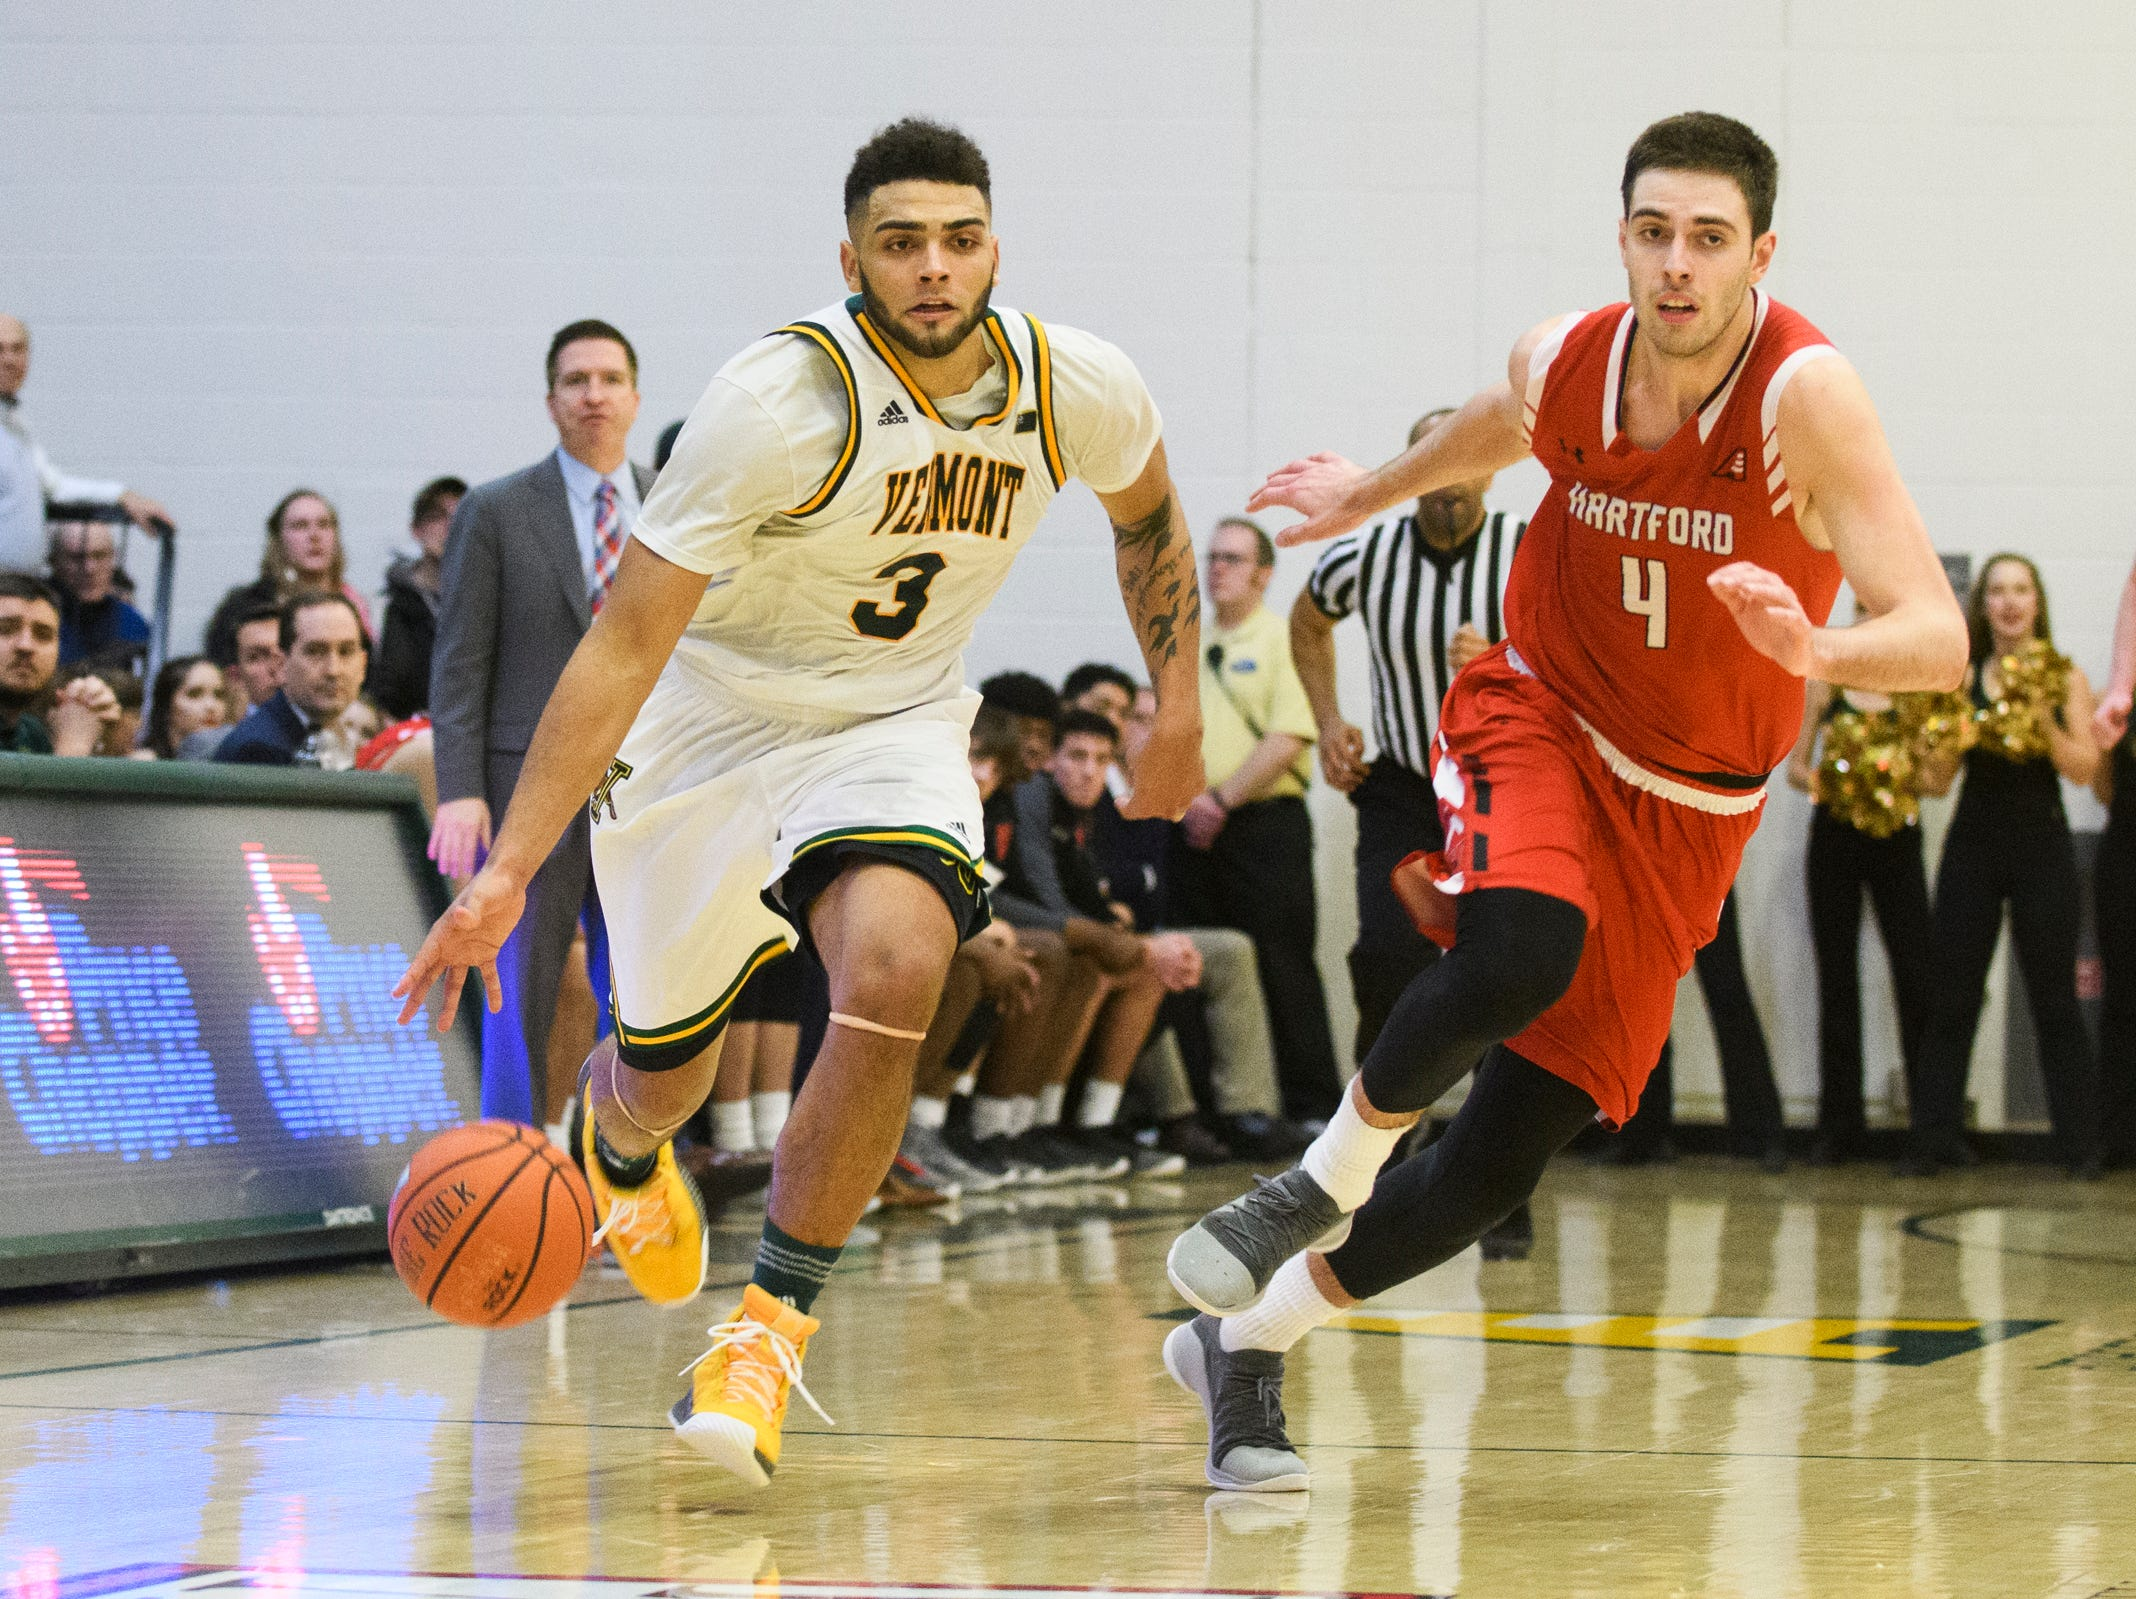 Vermont forward Anthony Lamb (3) dribbles the ball down the court past Hartford's George Blagojevic (4) during the men's basketball game between the Hartford Hawks and the Vermont Catamounts at Patrick Gym on Saturday night January 12, 2019 in Burlington.